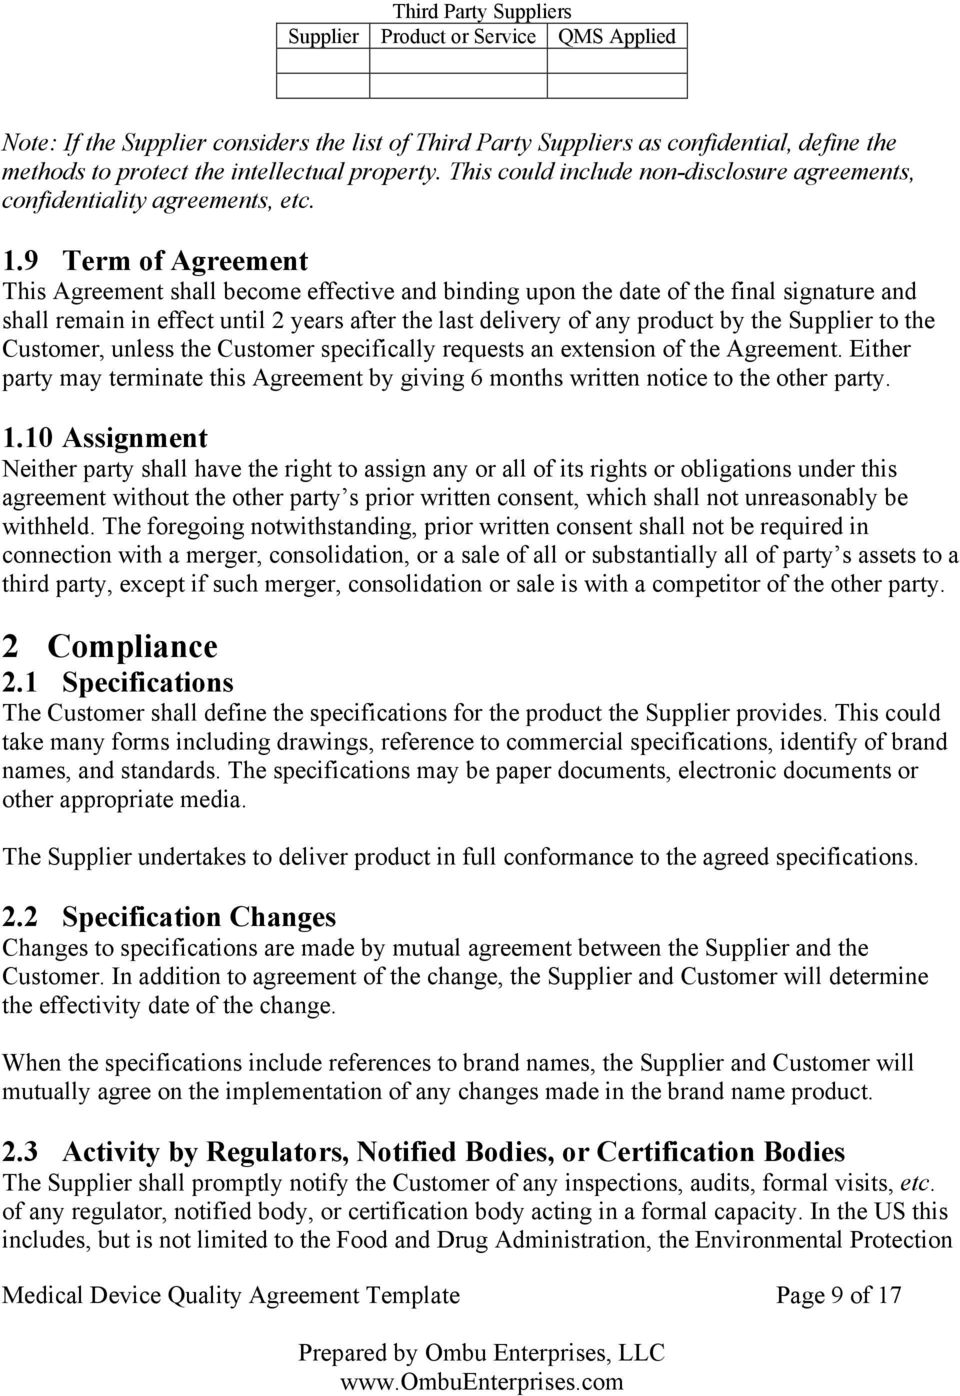 9 Term of Agreement This Agreement shall become effective and binding upon the date of the final signature and shall remain in effect until 2 years after the last delivery of any product by the